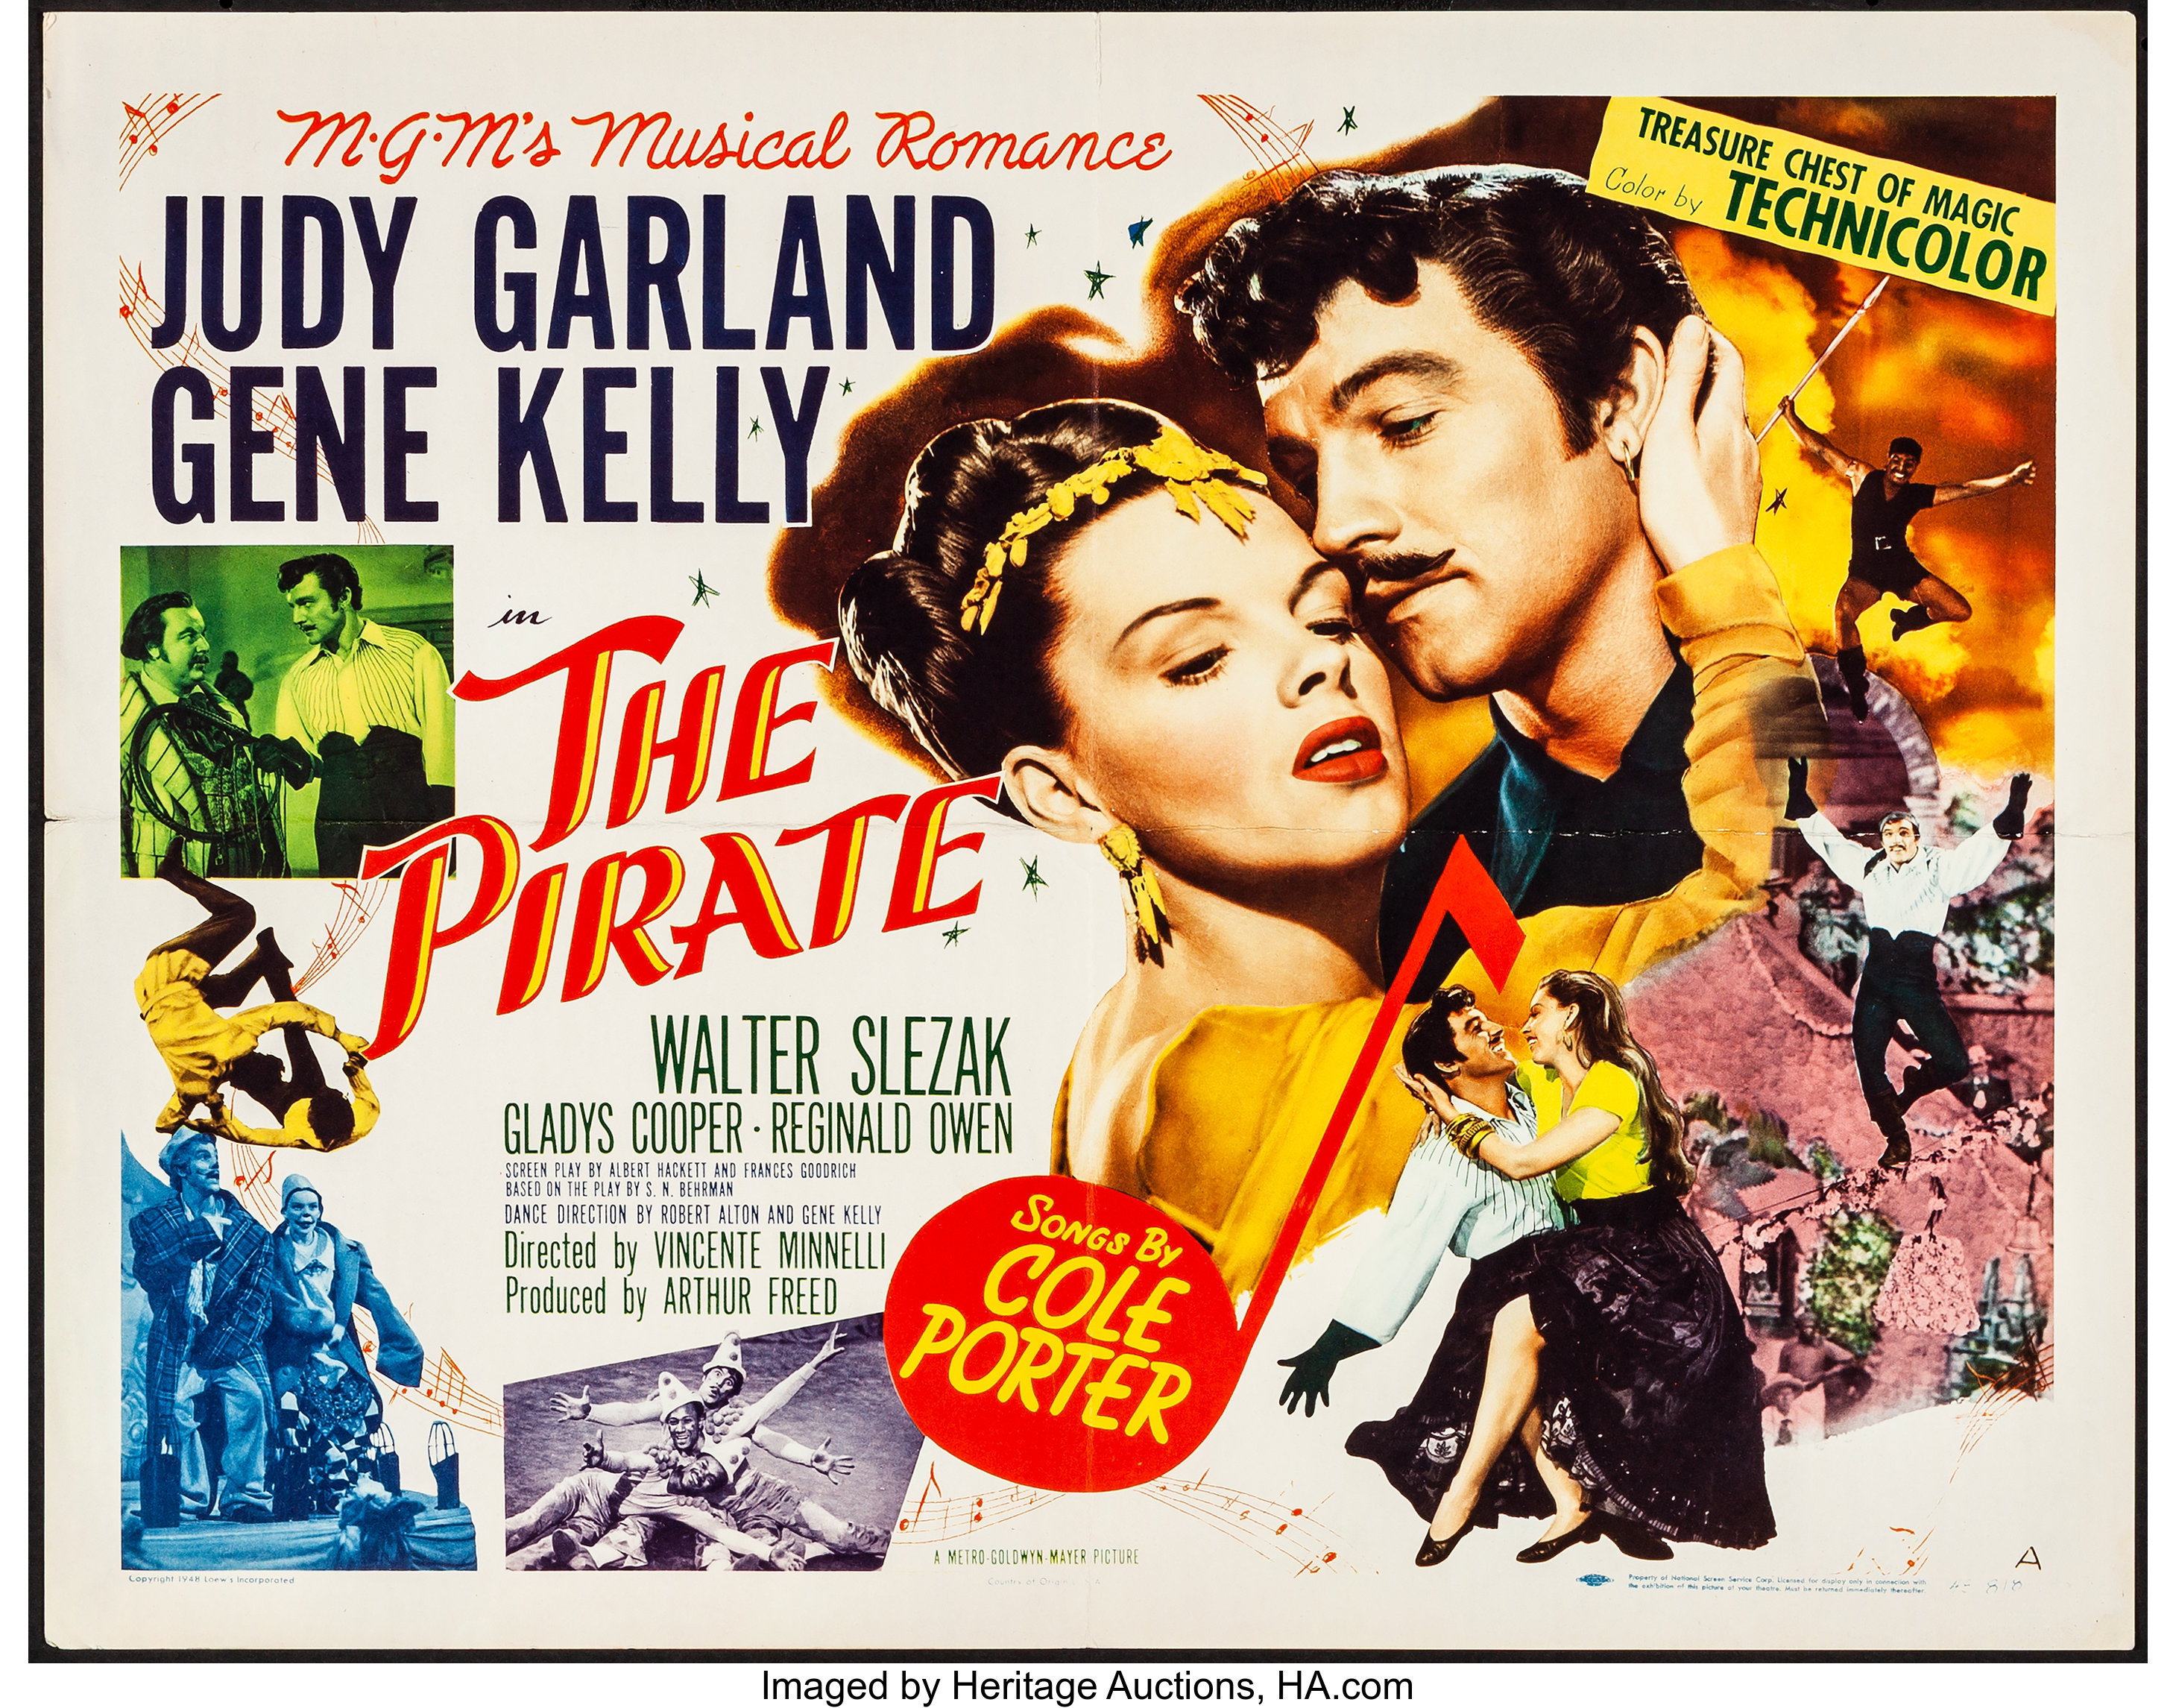 1948-The Pirate-poster.jpg